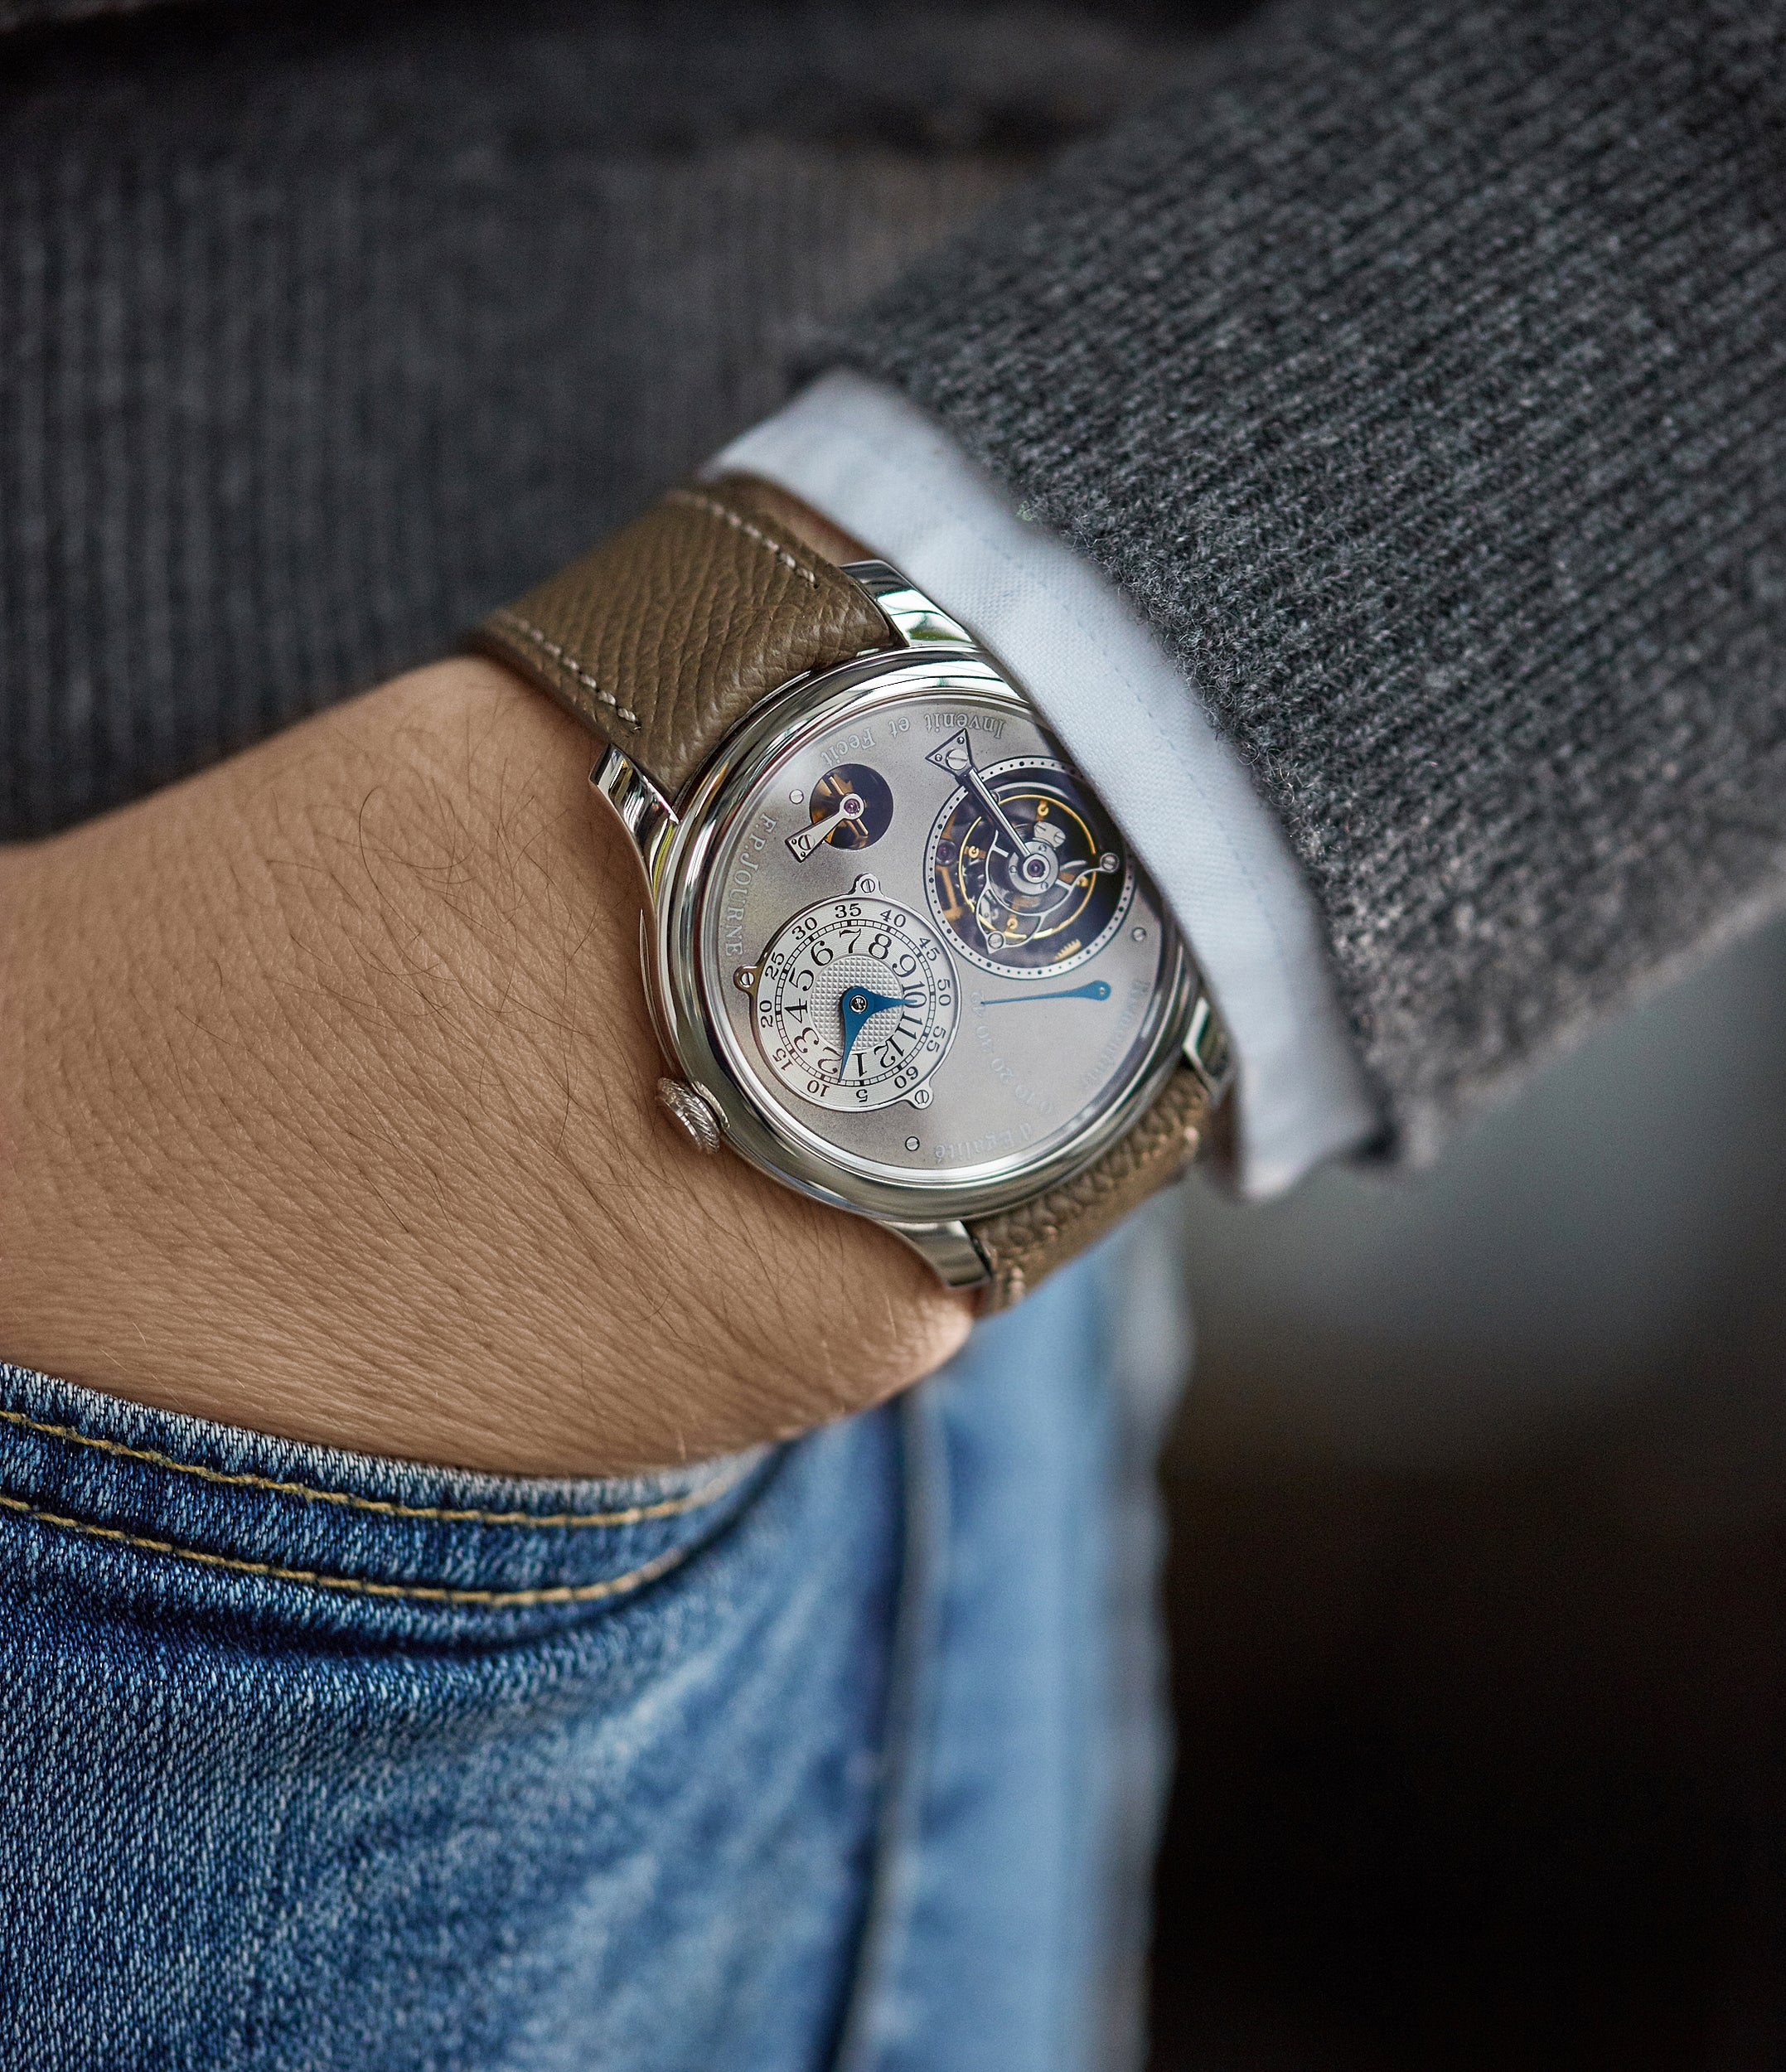 wristwatch Journe Tourbillon Remontoire Souverain rhutenium dial brass movement pre-owned watch at A Collected Man London specialist independent watchmakers